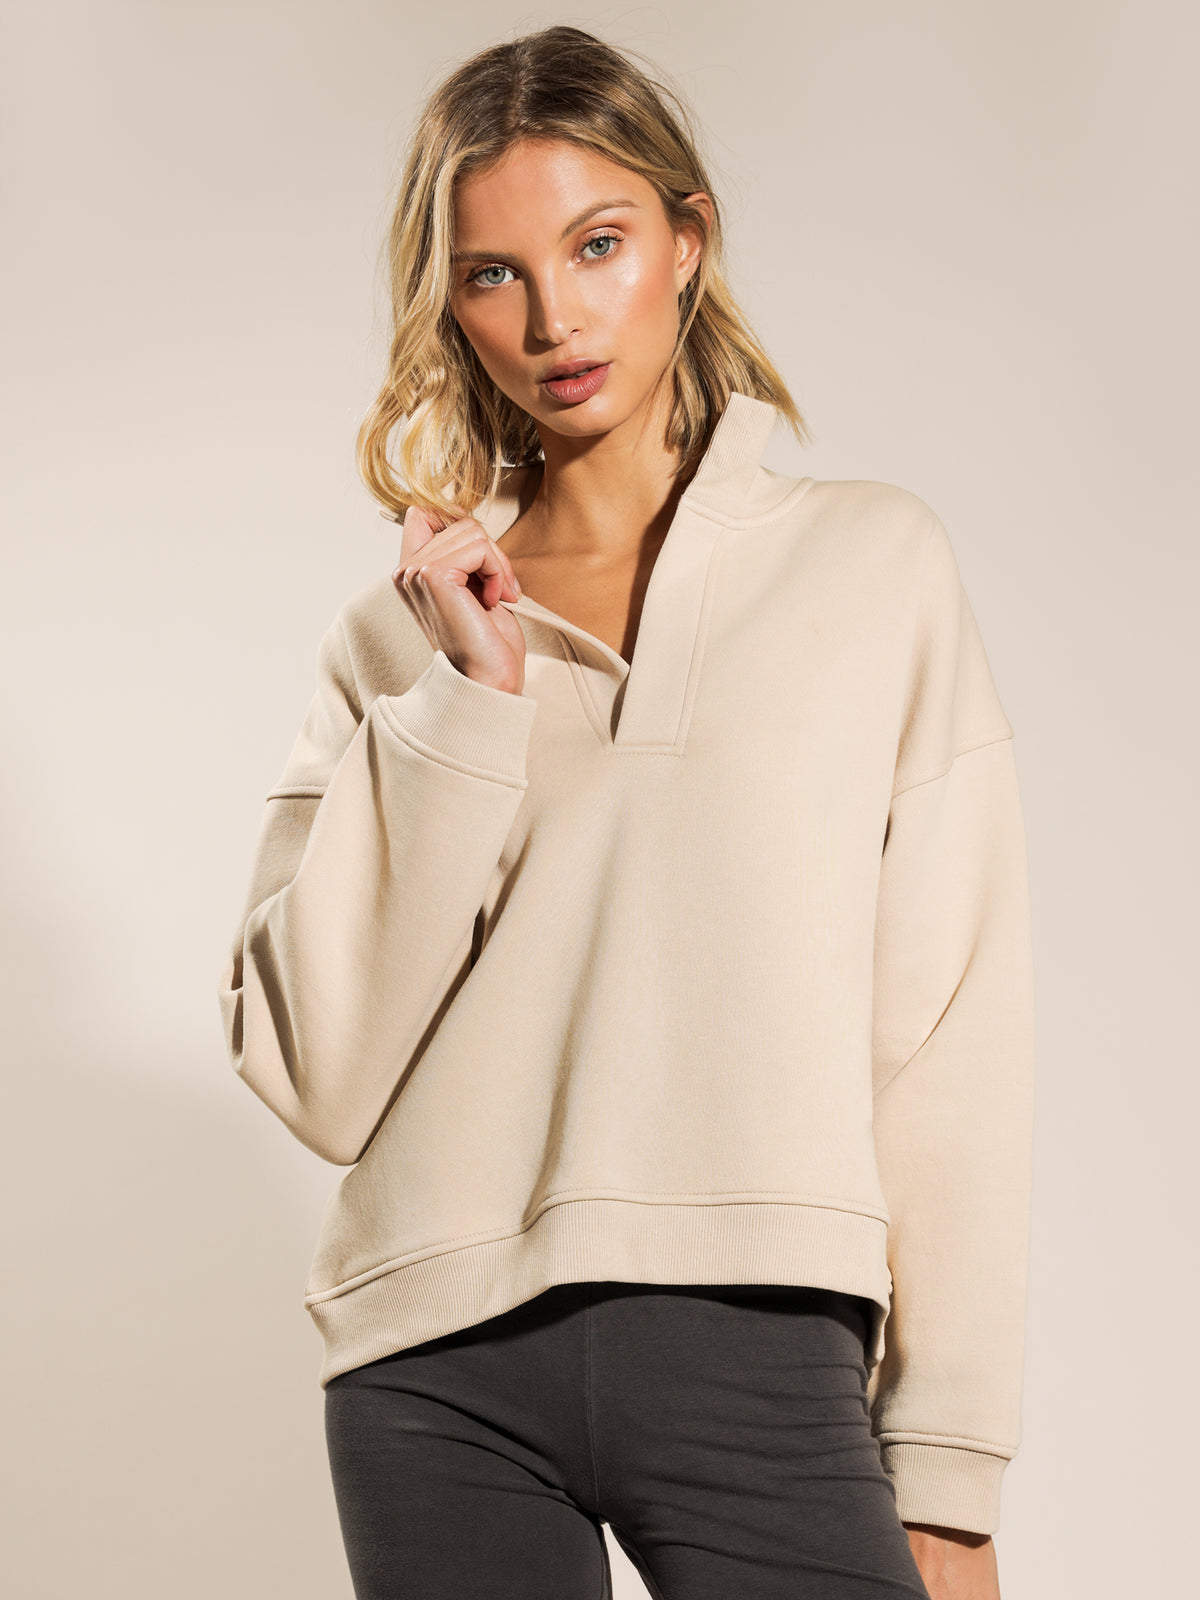 Carter Classic Rugby Sweater in Sand